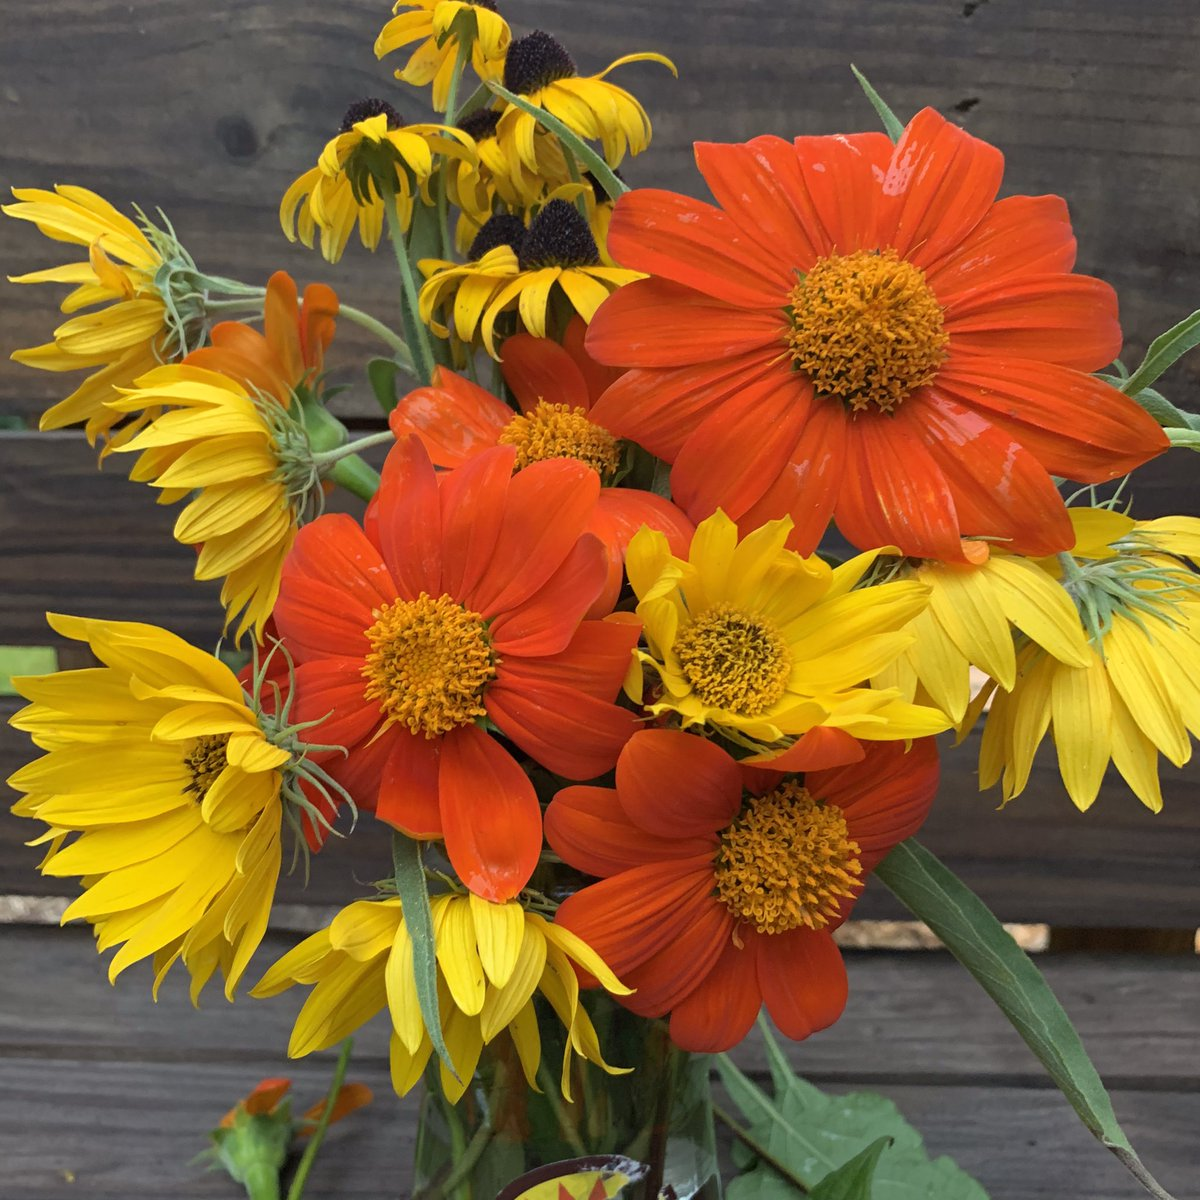 Another virtual bouquet. I call it the salsa mix. Happy Day! #MexicanSunflower #MaximilianSunflower and #rudbeckiaamericangoldrus #tithonia #sunflowers #blackeyedsusan #pacepicante https://t.co/K503X16it5